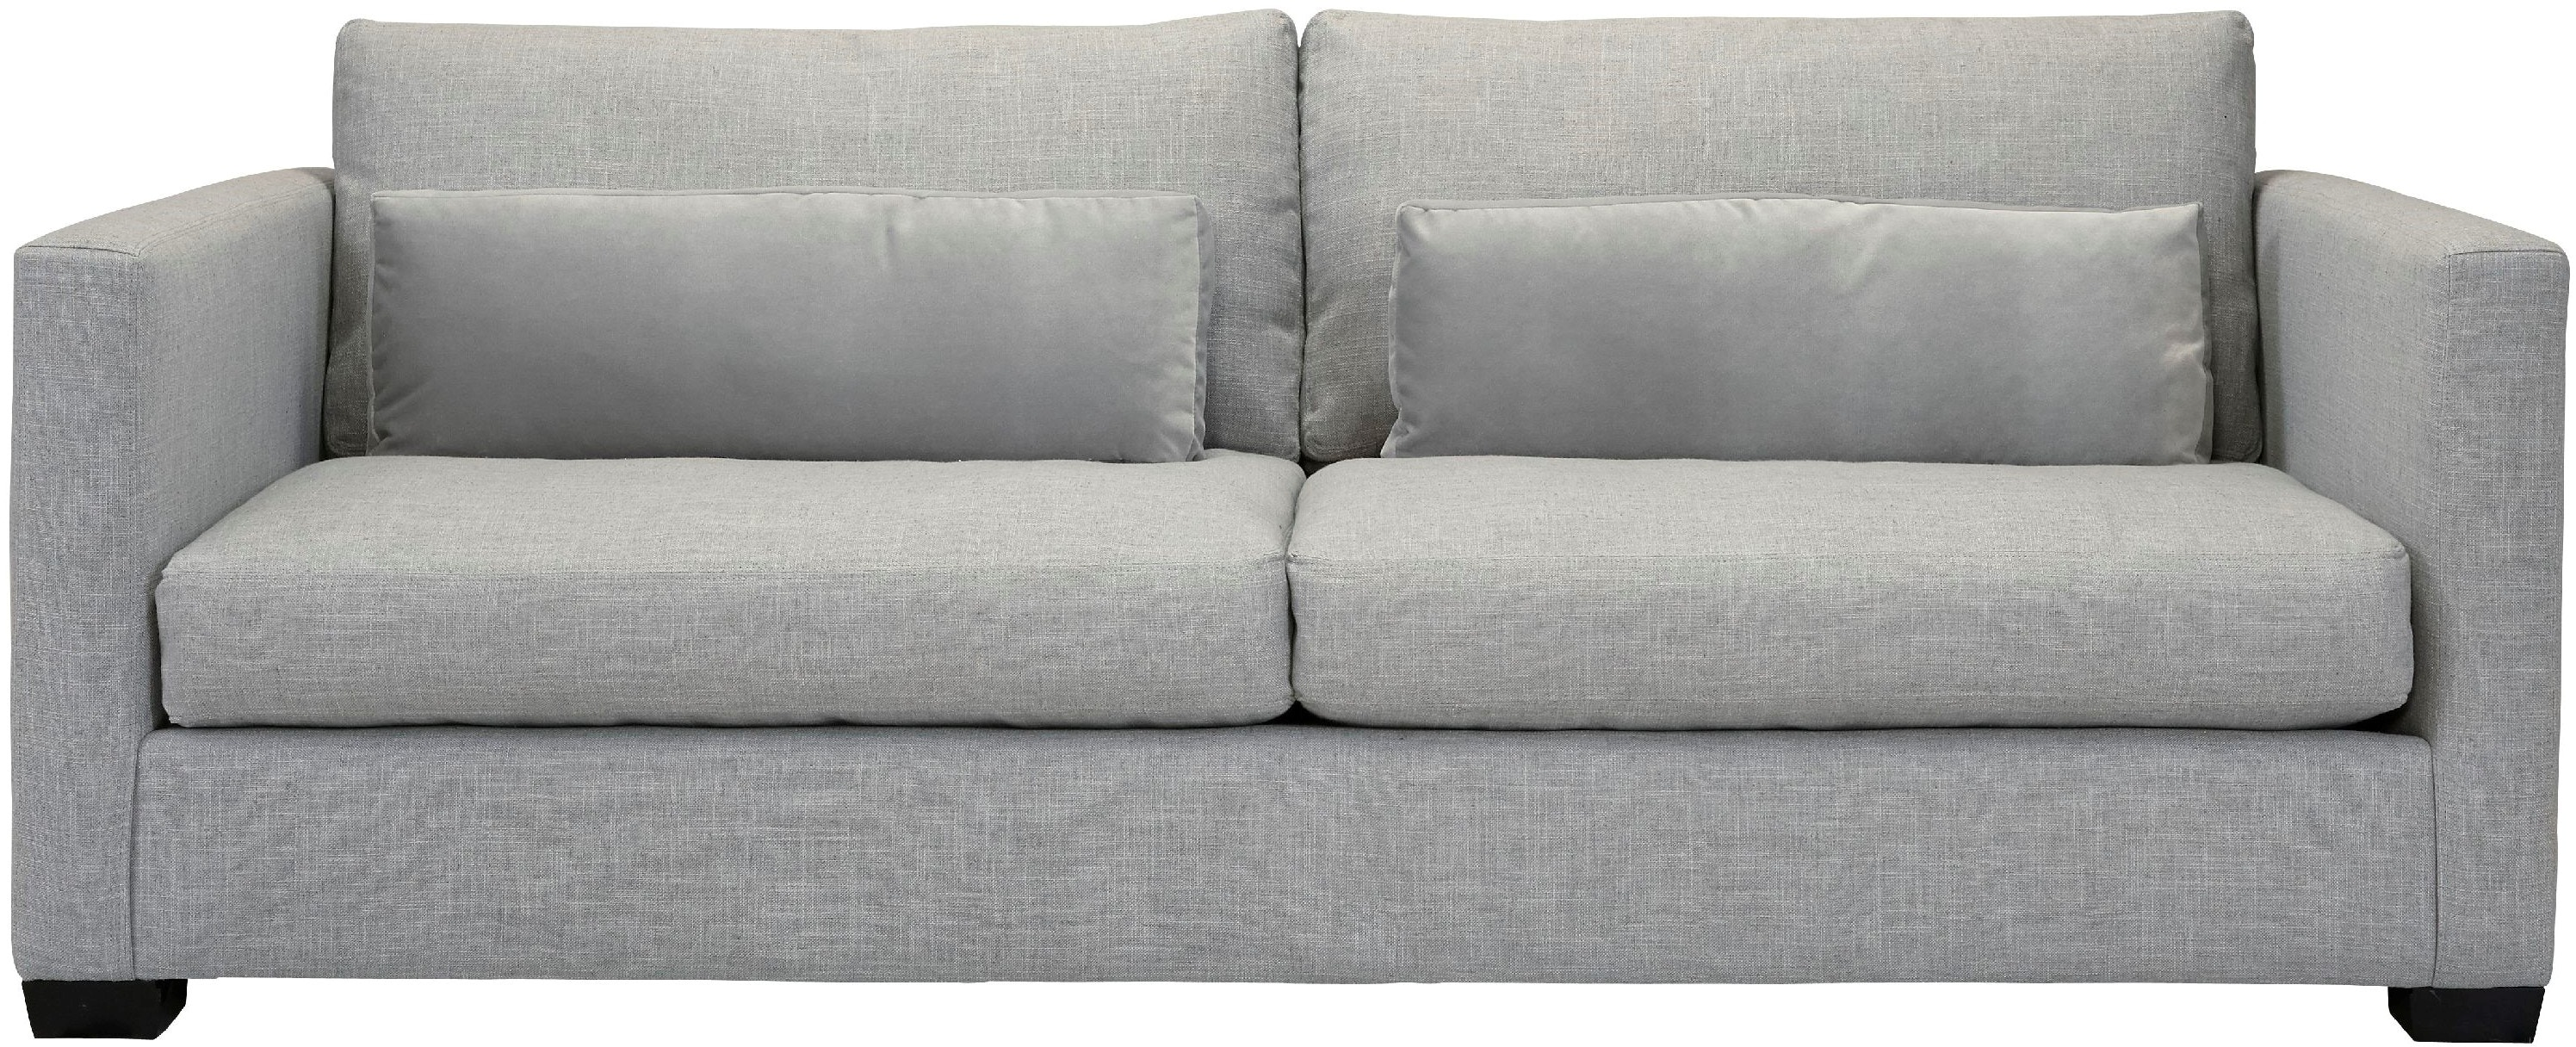 Southern Furniture Living Room McCoy 7ft Sofa Whitley